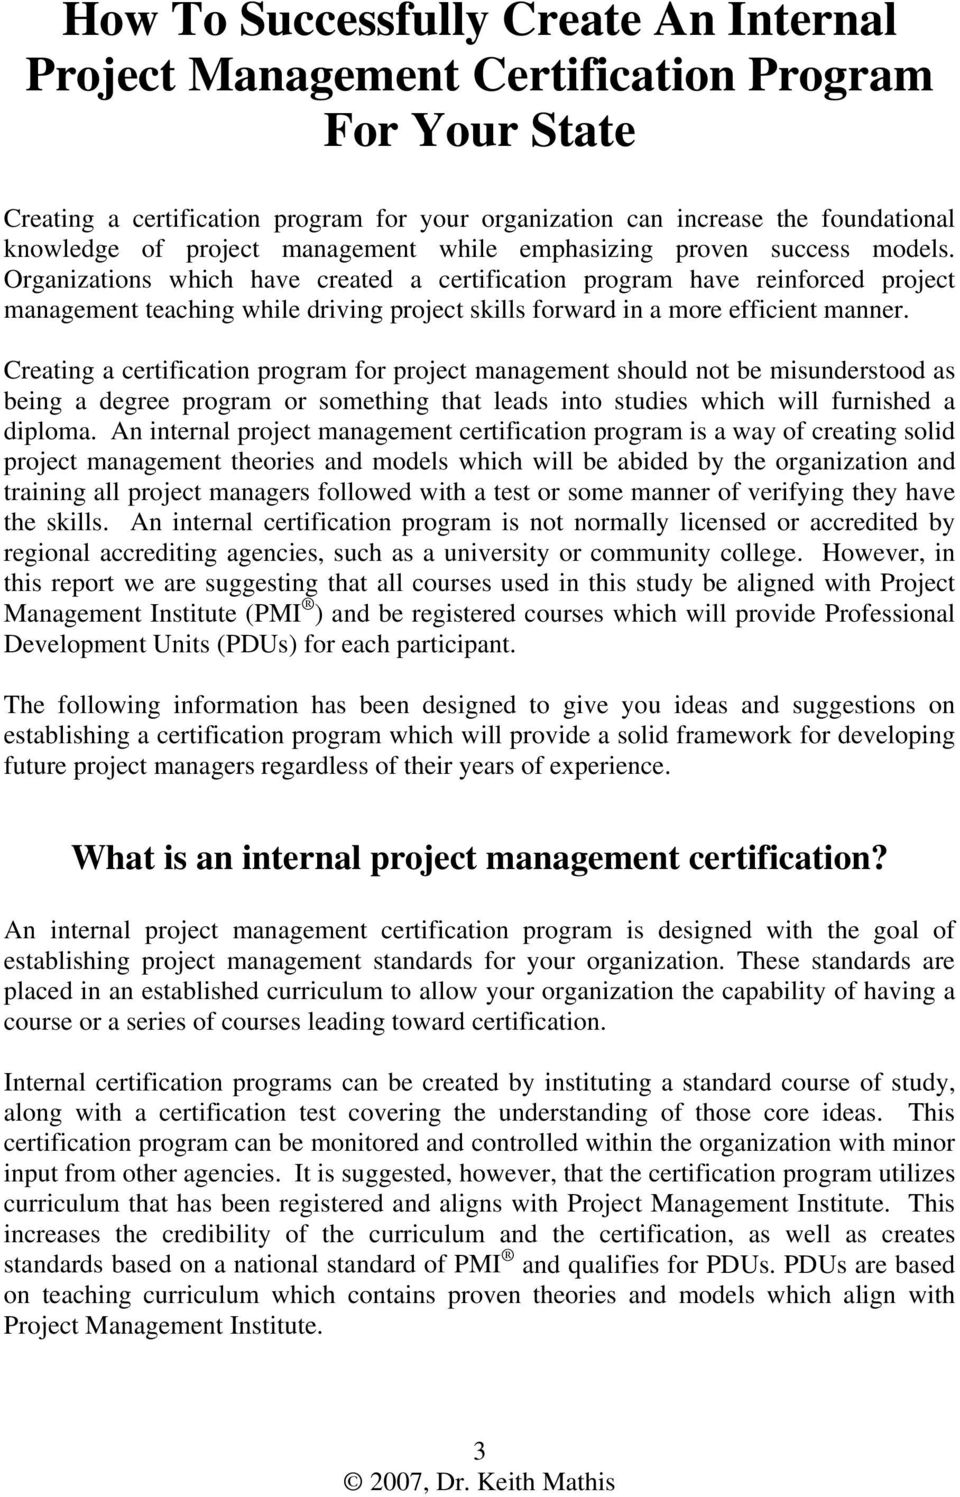 Organizations which have created a certification program have reinforced project management teaching while driving project skills forward in a more efficient manner.